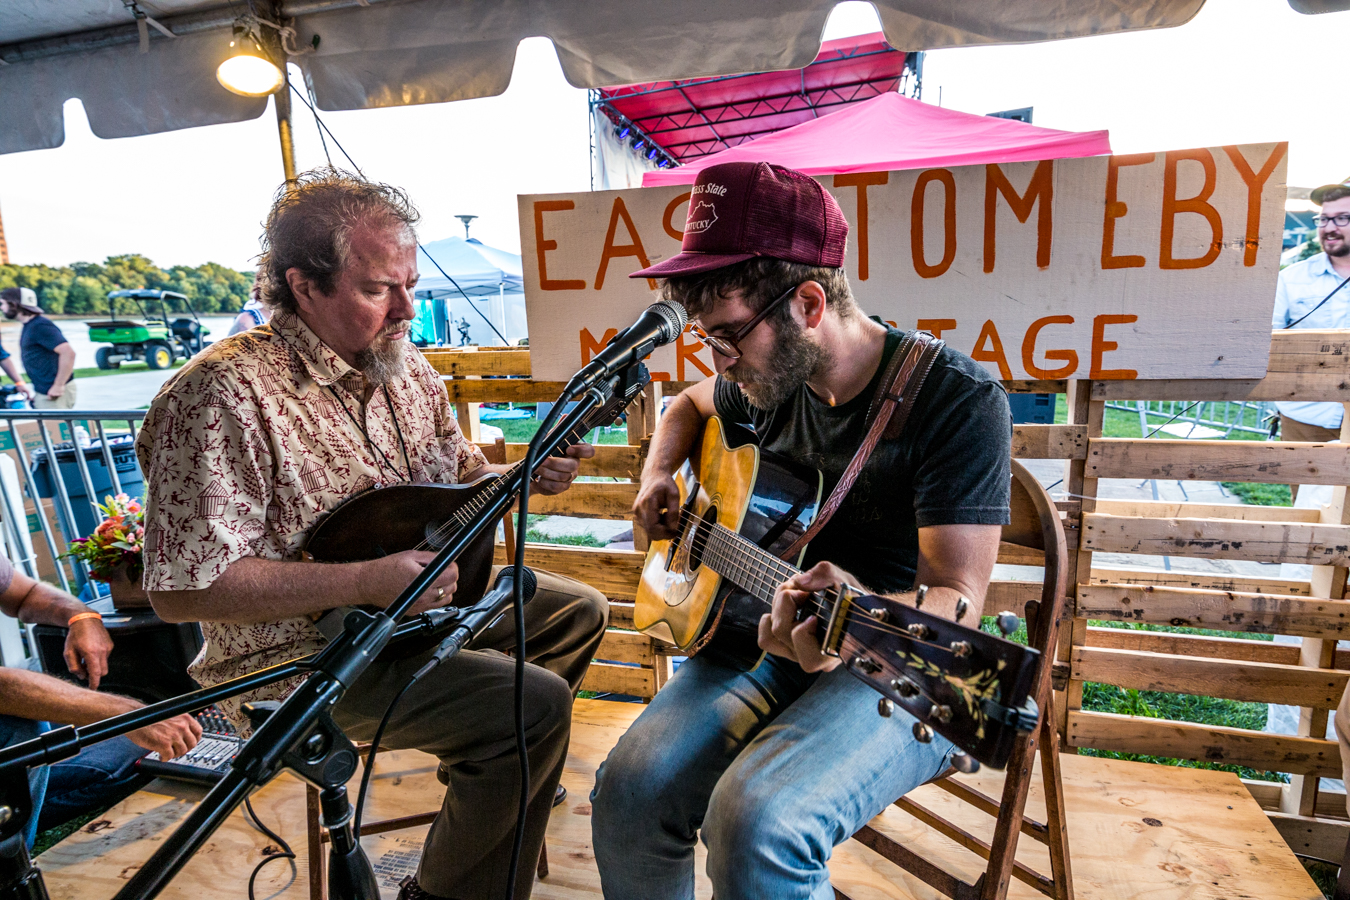 The Whispering Beard Folk Festival jammed for three days at Smale Park from Thursday, August 22 to Saturday, August 24. The festival was formerly held in Friendship, IN before coming to Cincinnati's riverfront this year. / Image: Catherine Viox // Published: 8.25.19<p></p>